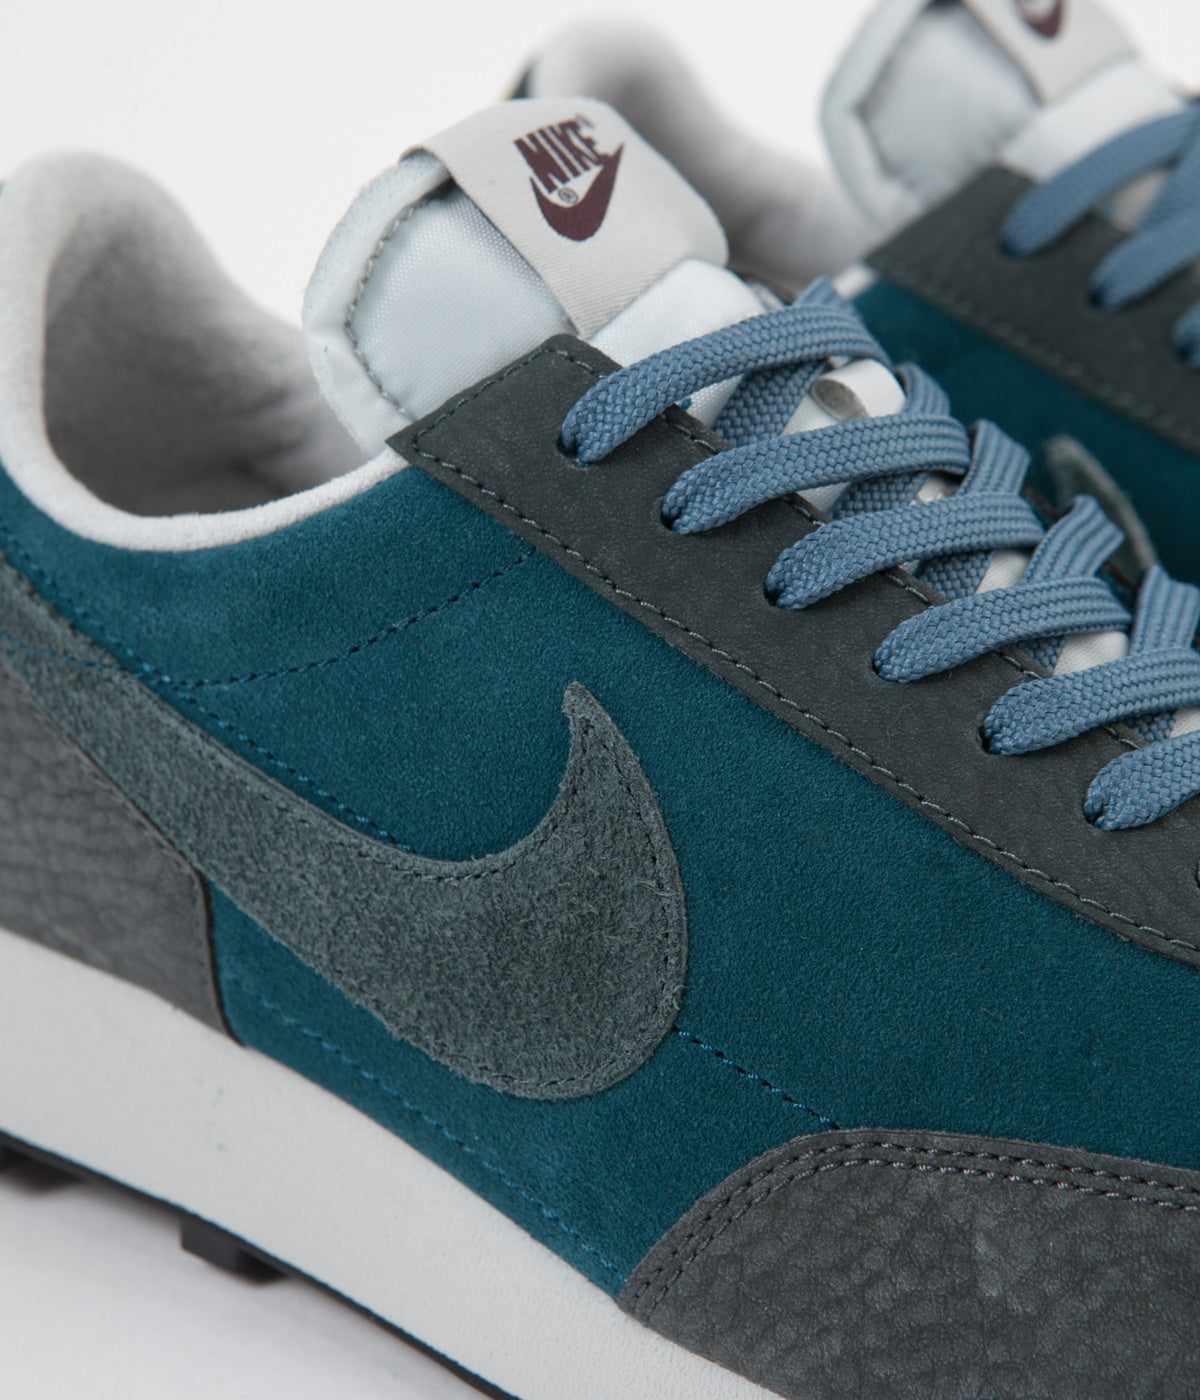 nuez Sembrar peligroso  Nike Daybreak Shoes - Midnight Turquoise / Seaweed - Dark Smoke Grey |  Always in Colour